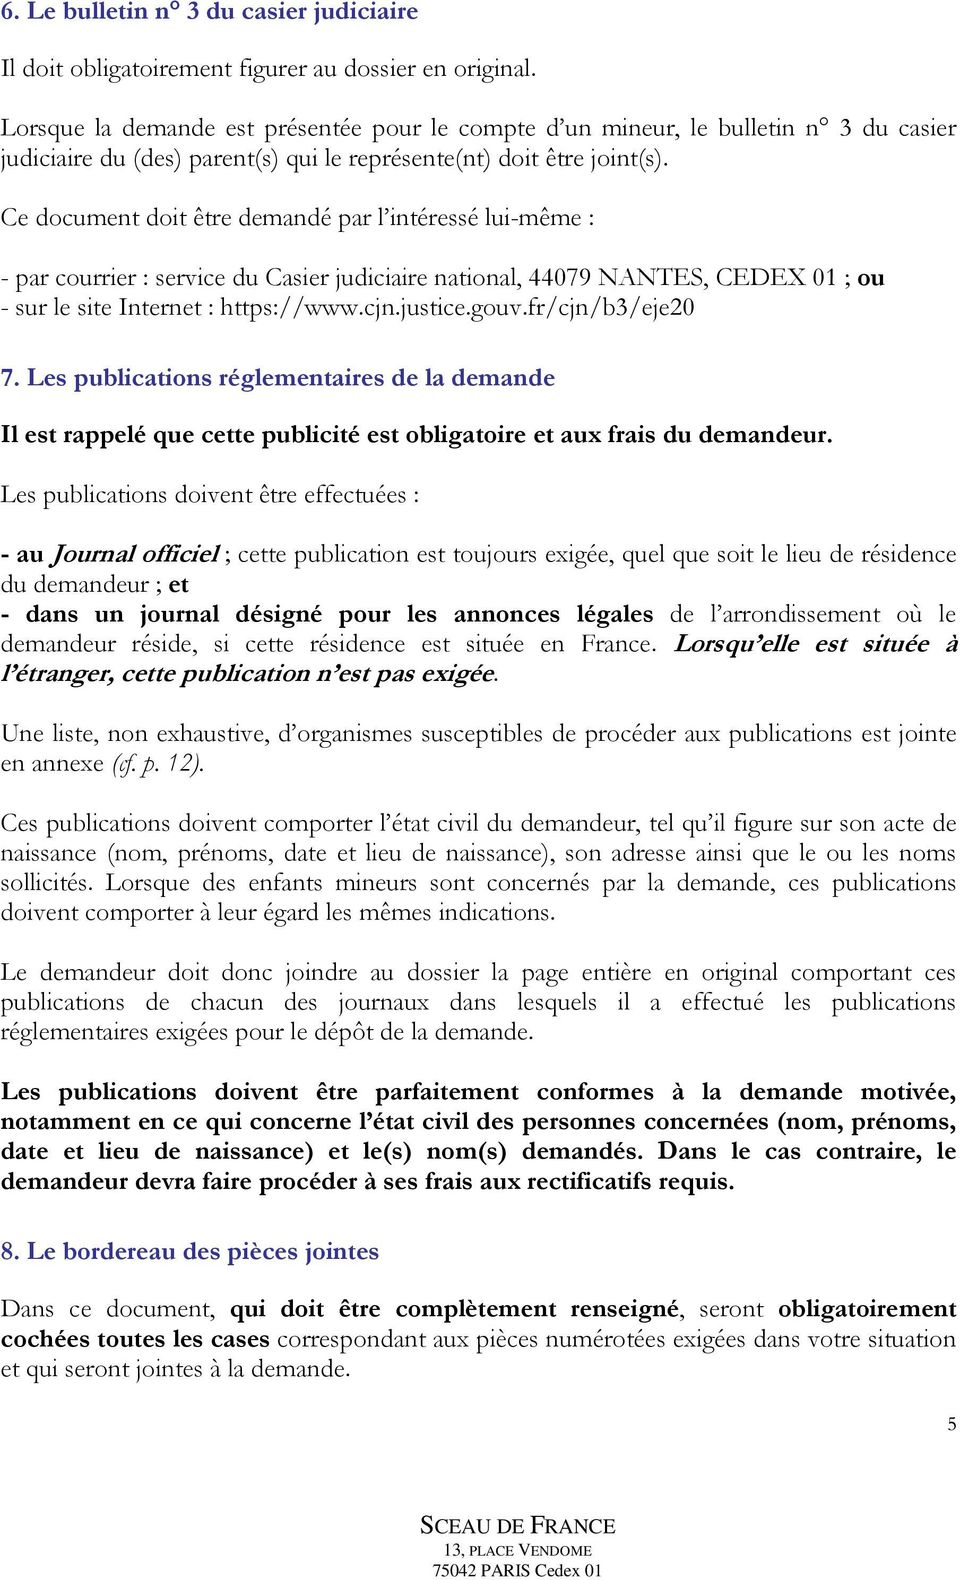 Ce document doit être demandé par l intéressé lui-même : - par courrier : service du Casier judiciaire national, 44079 NANTES, CEDEX 01 ; ou - sur le site Internet : https://www.cjn.justice.gouv.